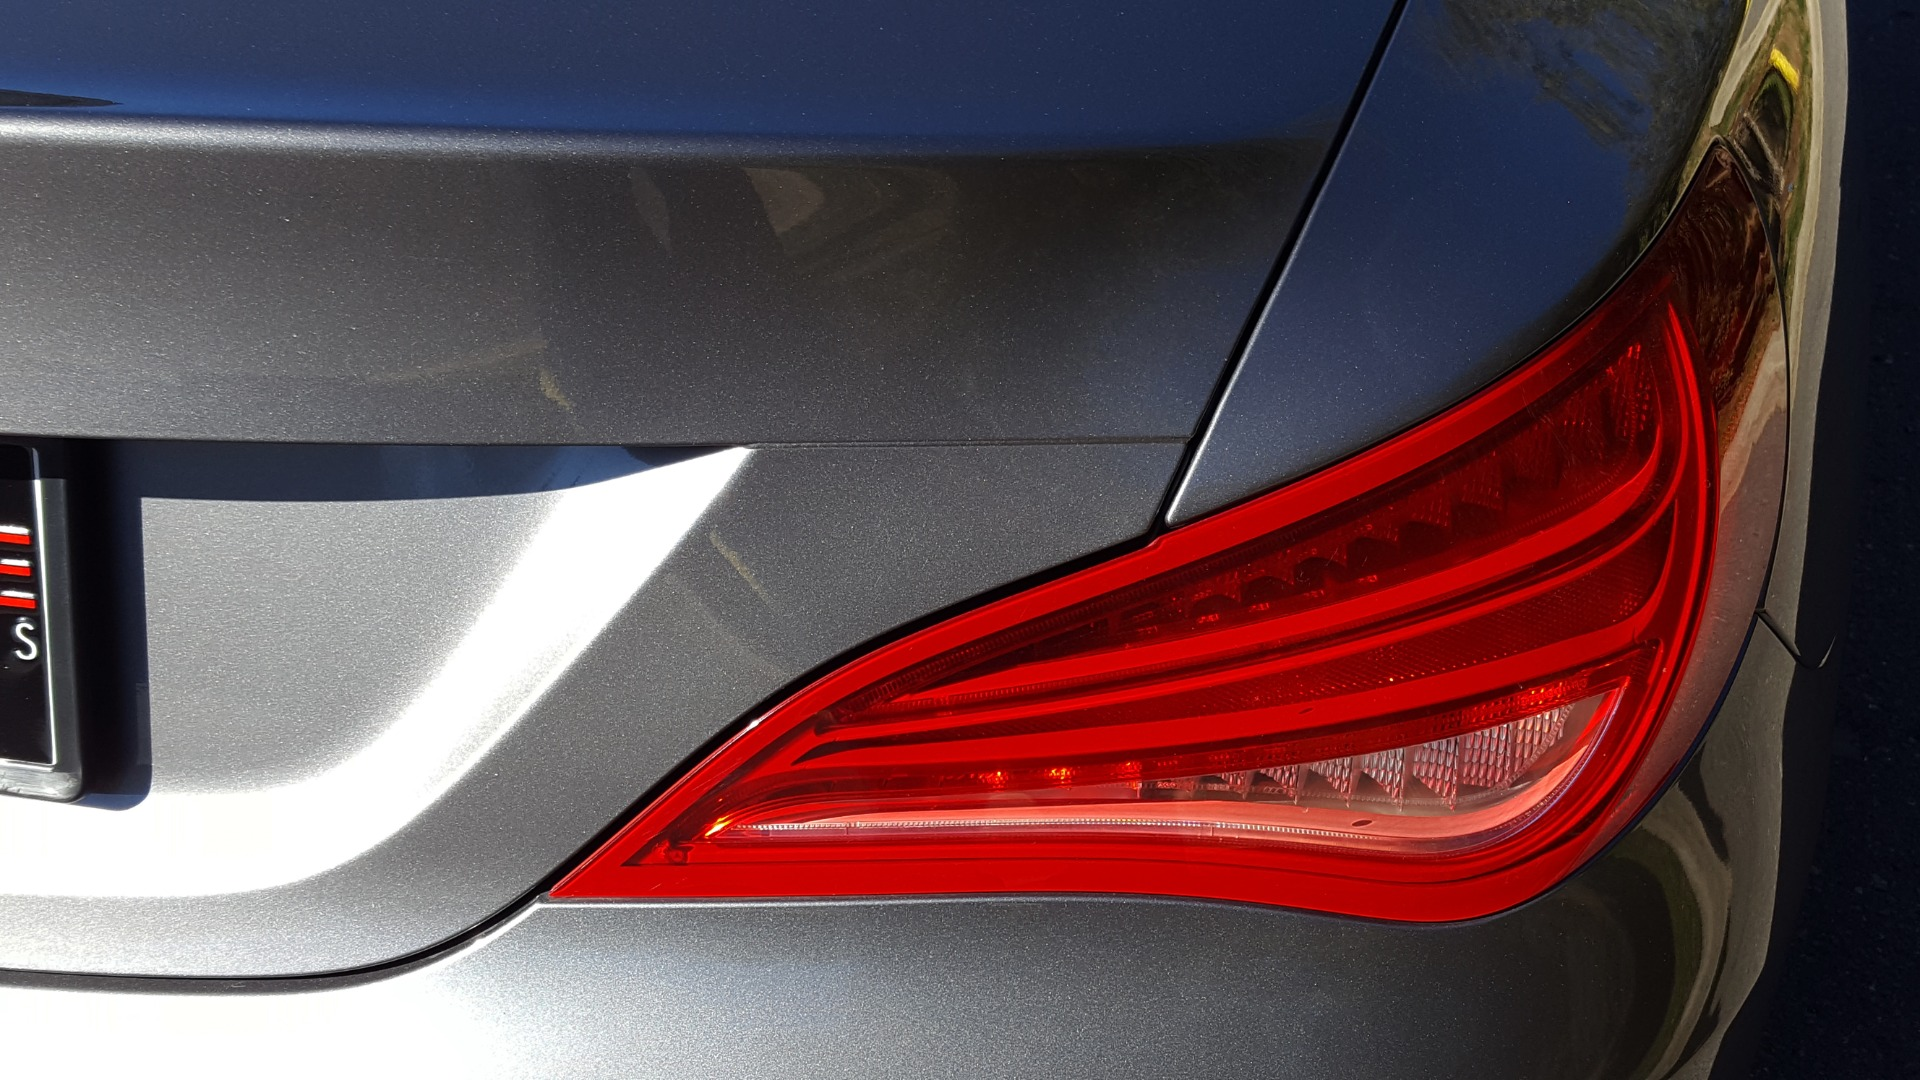 Used 2014 Mercedes-Benz CLA-CLASS CLA 250 / NAV / PANO-ROOF / BLIND SPOT ASSIST / XENON HEADLIGHTS for sale $19,995 at Formula Imports in Charlotte NC 28227 10